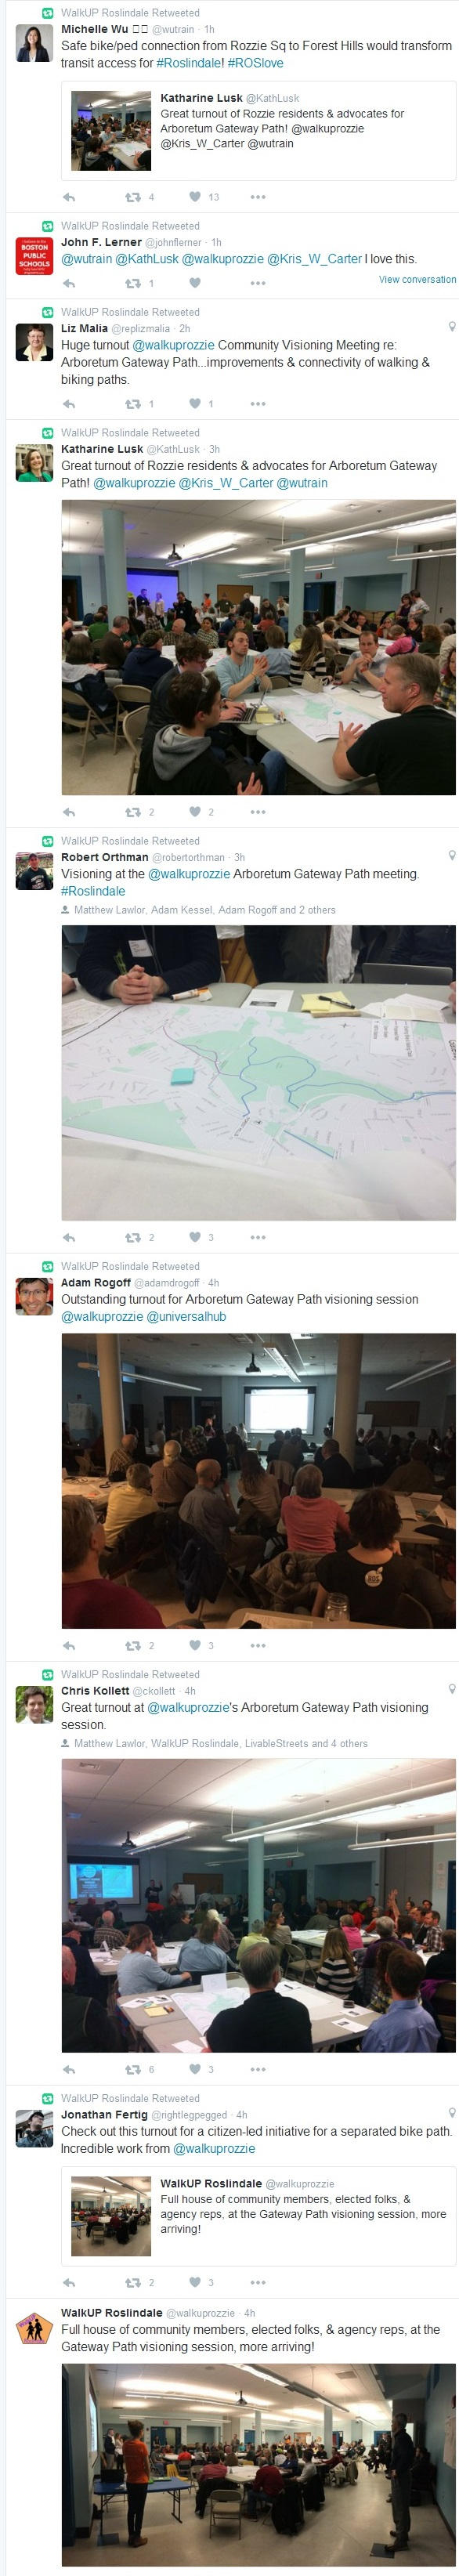 Tweets about Gateway Path Visioning Session